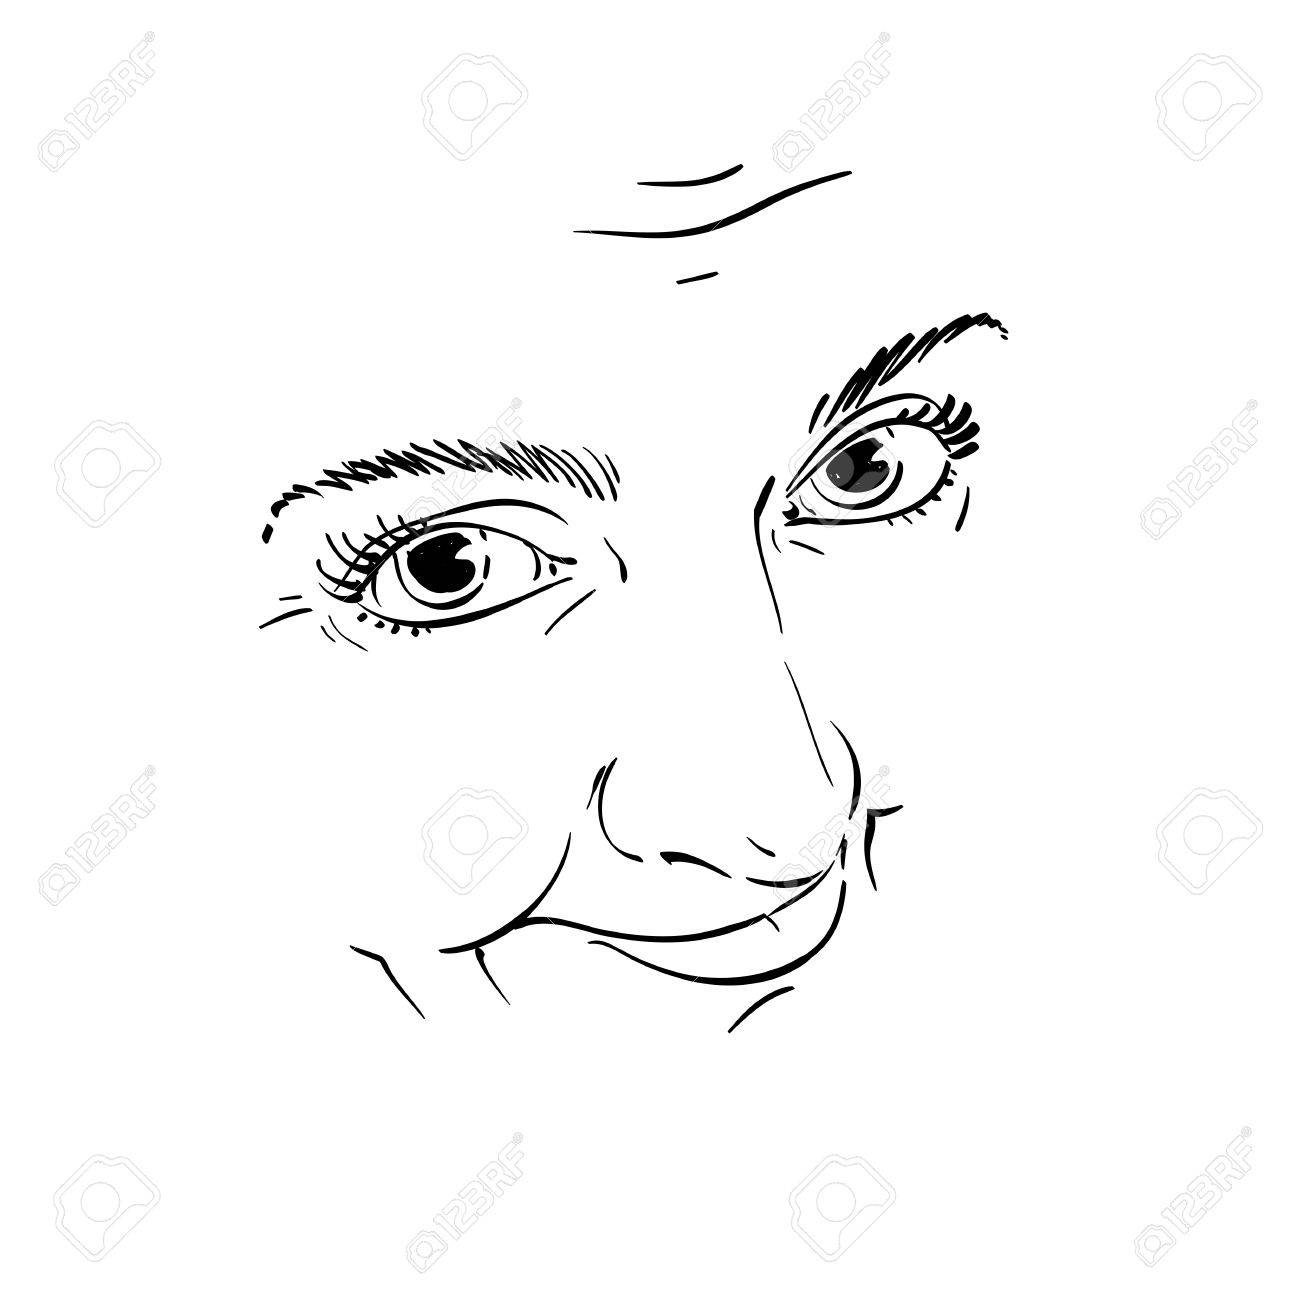 Illustration Visage black and white illustration of lady face, delicate visage features